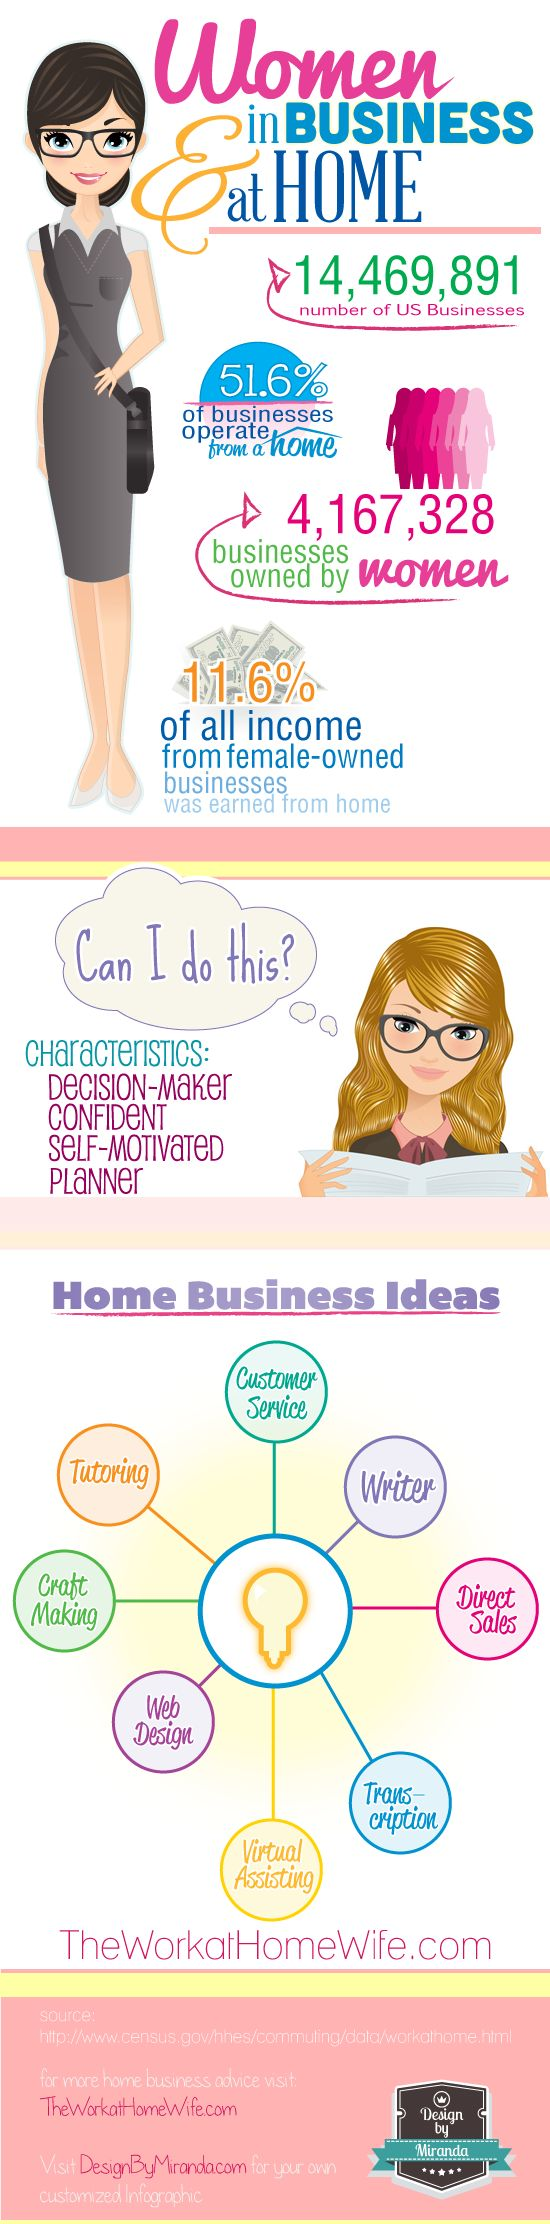 Women In Home Based Business Infographic